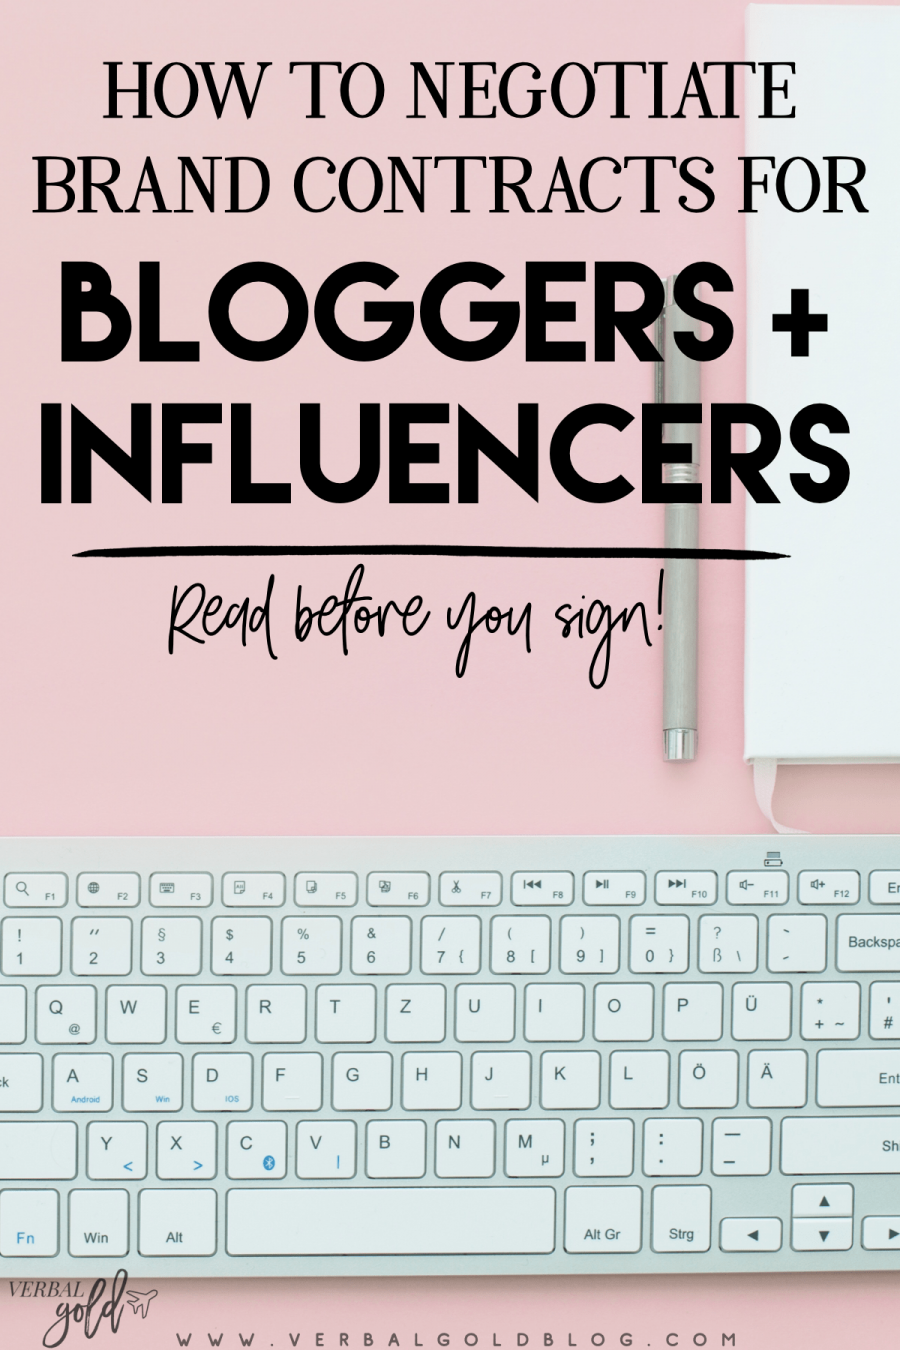 As a blogger or influencer, working with brands can be exciting! If you're new to this, you'll want to make sure brands don't take advantage of you - here's the first ever guide to blogger + influencer contracts that will have you making the most out of your work! #Blogging